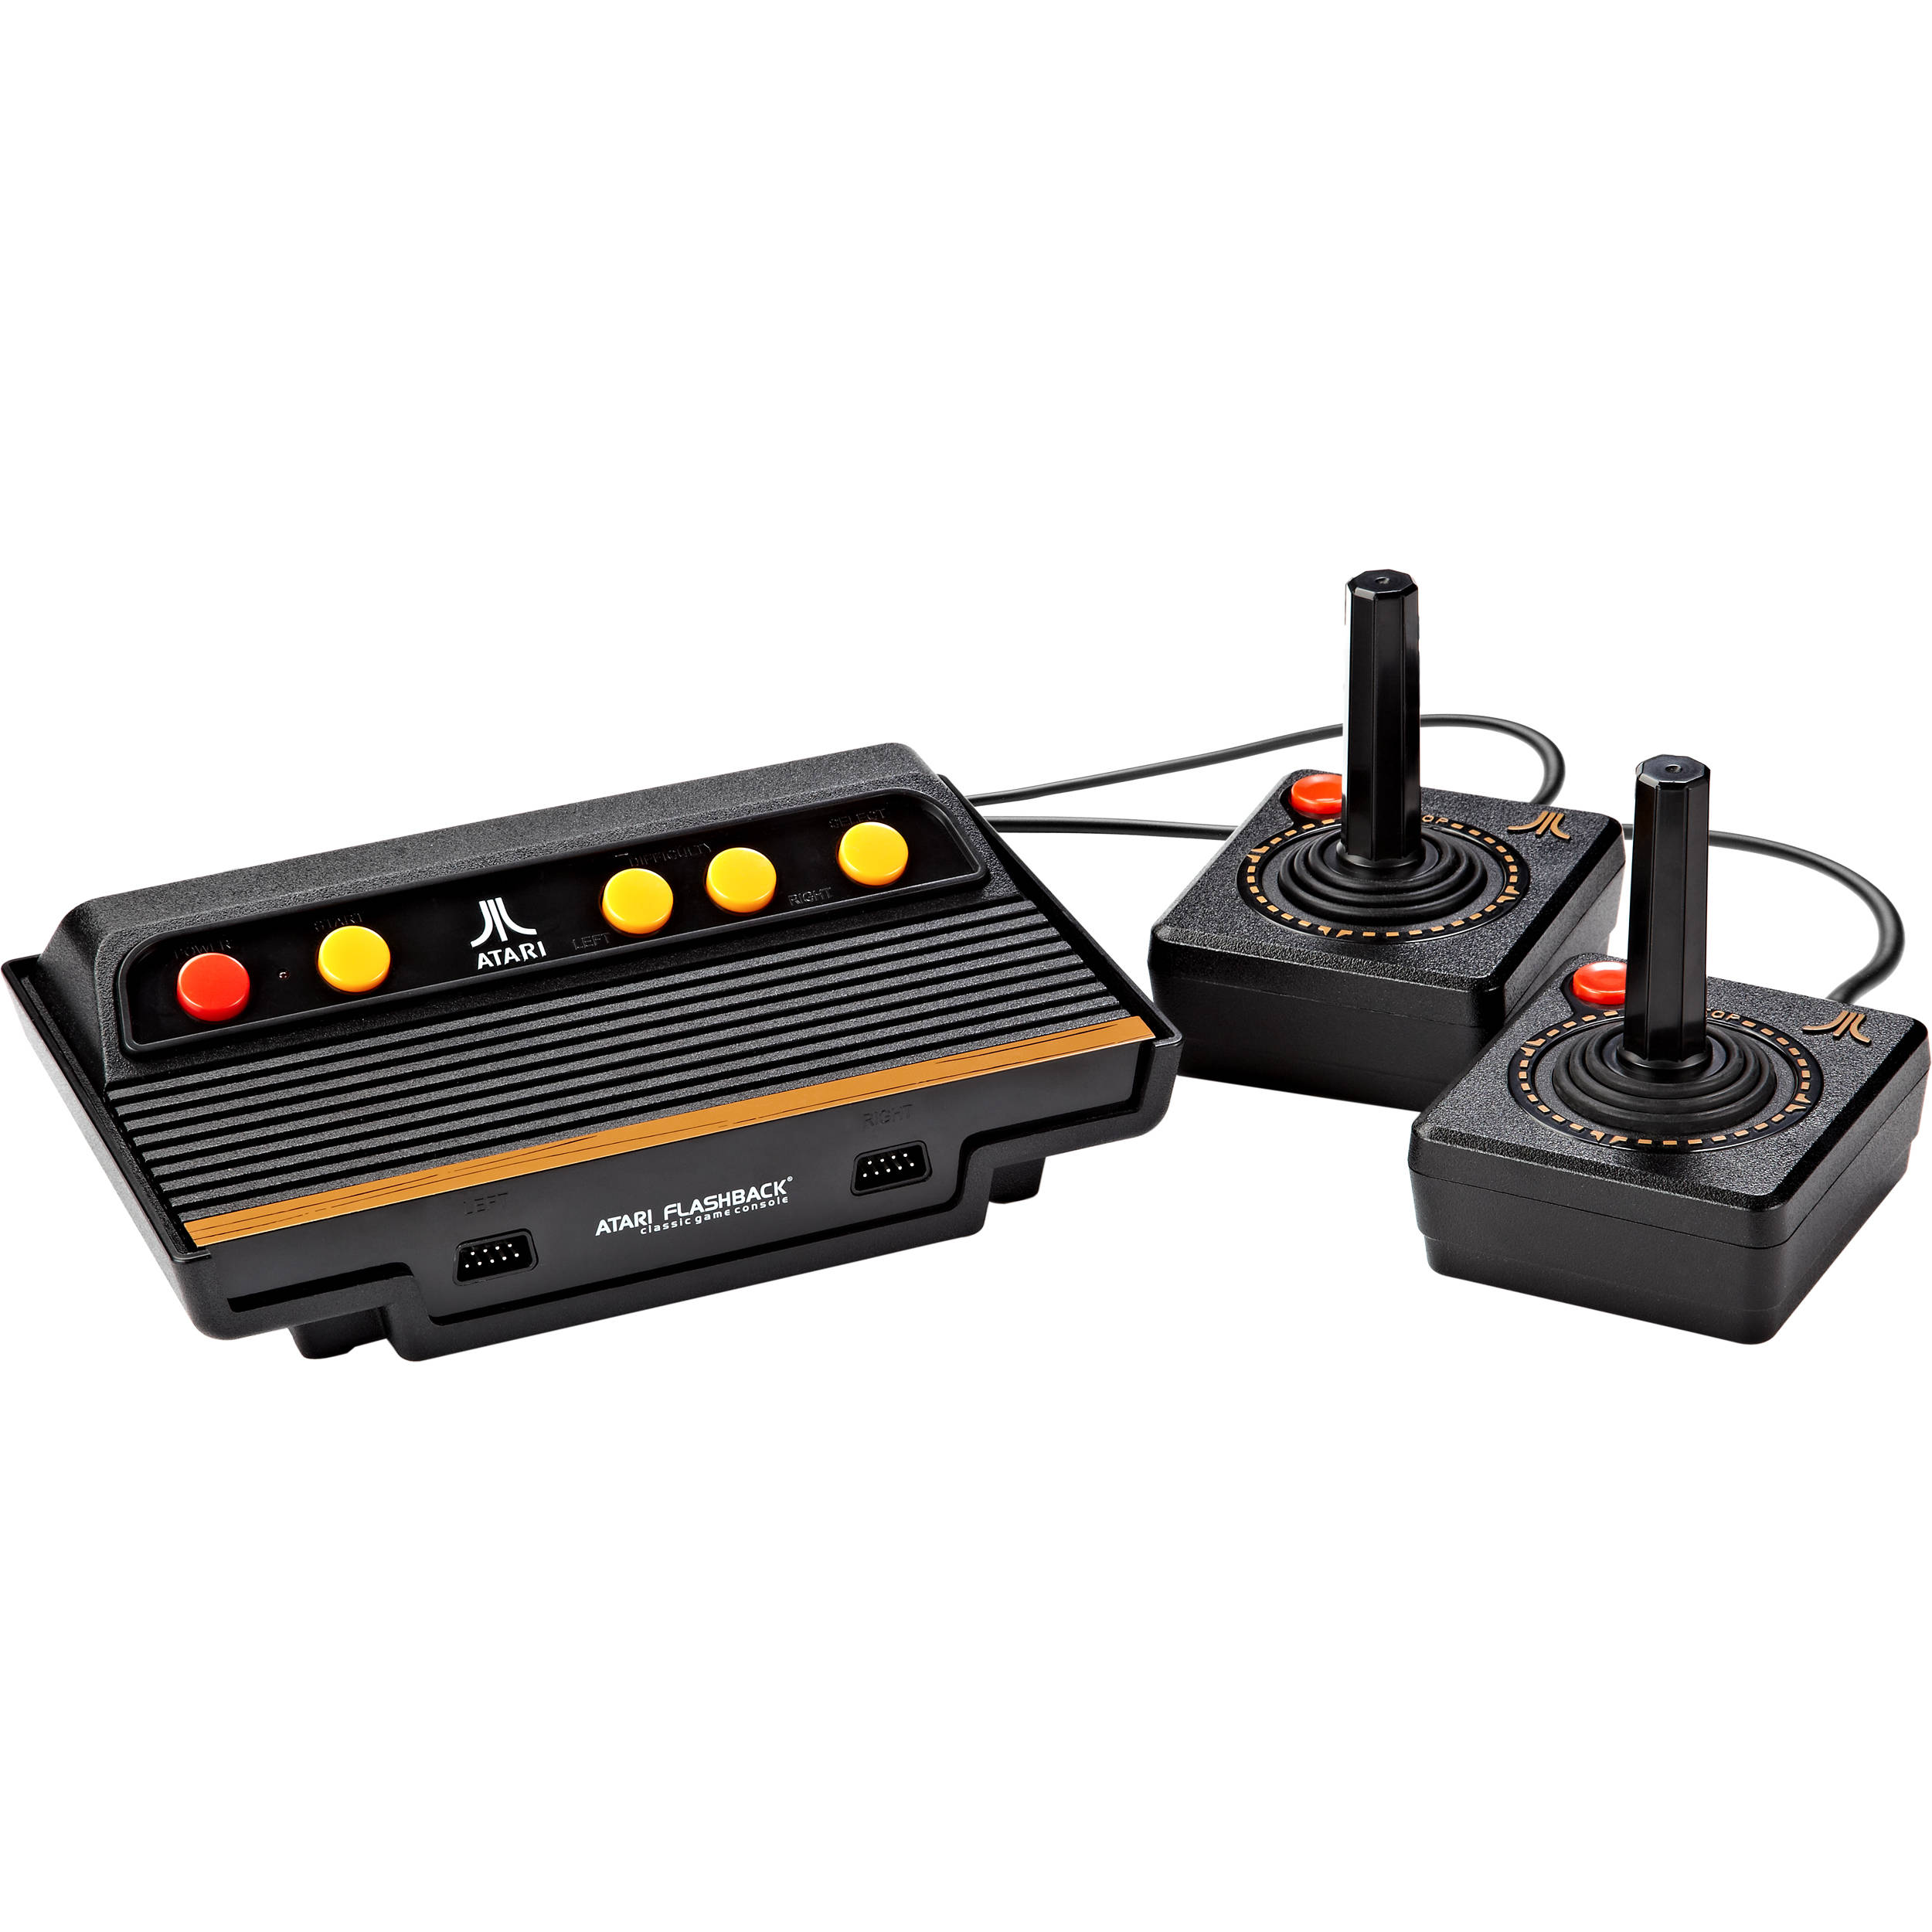 Atari flashback 8 game console 00378 3 b h photo video - Atari flashback 3 classic game console ...